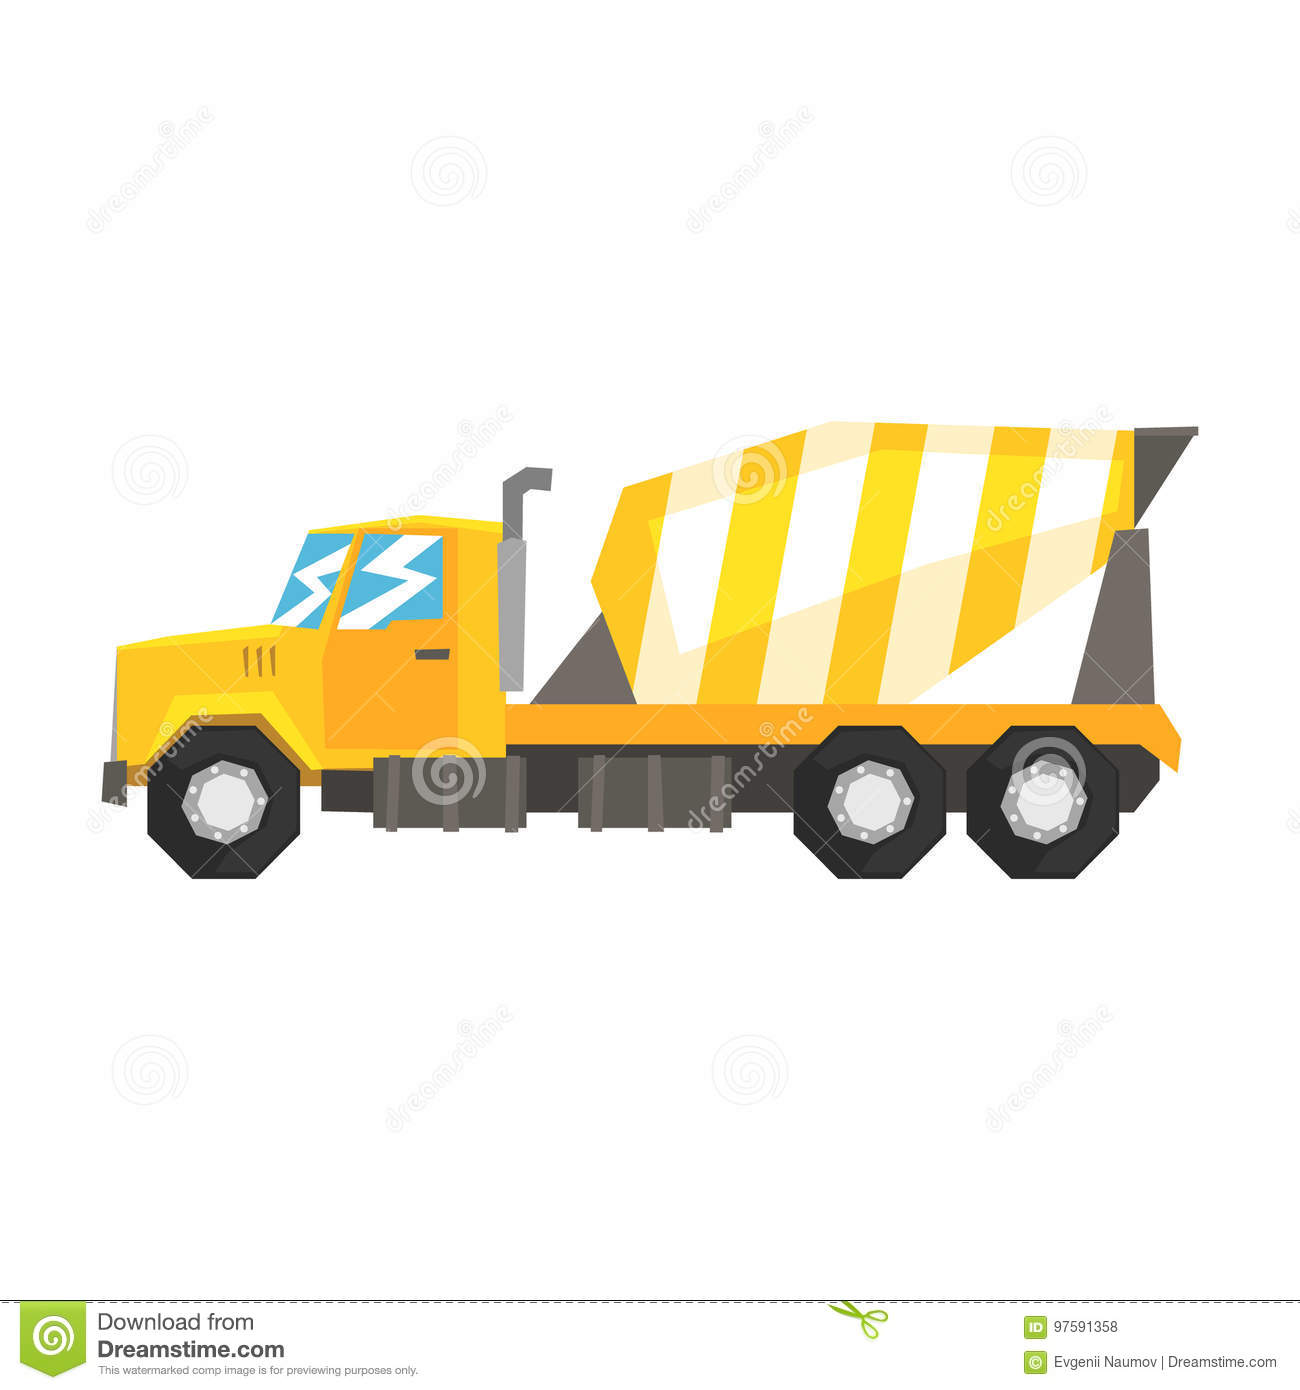 Yellow Concrete Mixer Truck Heavy Industrial Machinery Construction Equipment Vector Illustration On A White Background